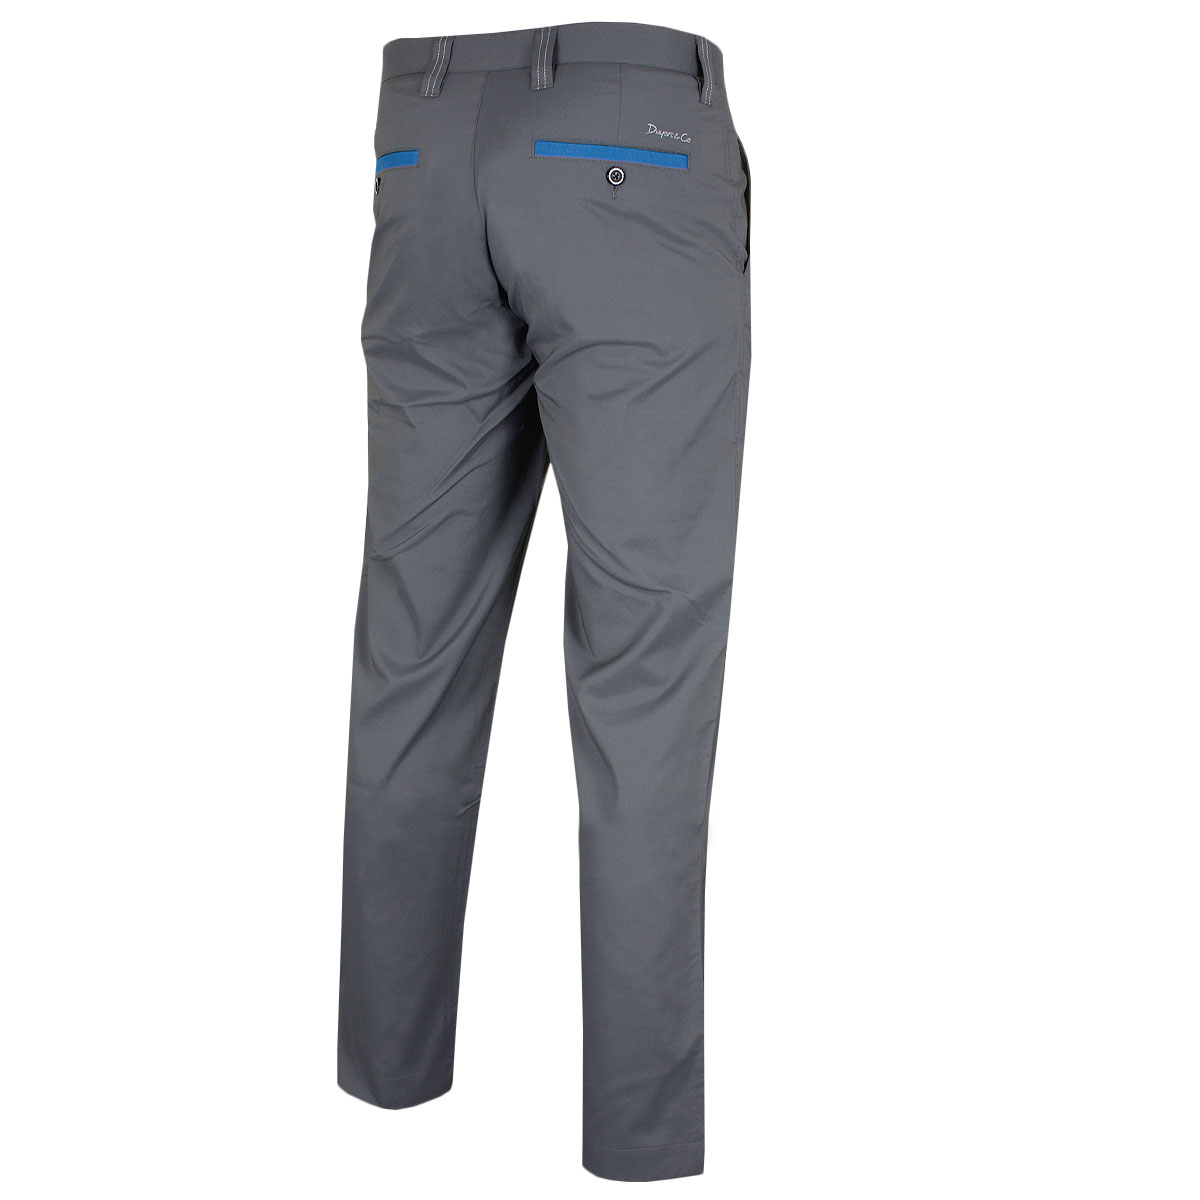 Dwyers-amp-Co-Mens-Matchplay-Stretch-Lightweight-Golf-Trousers-38-OFF-RRP thumbnail 23